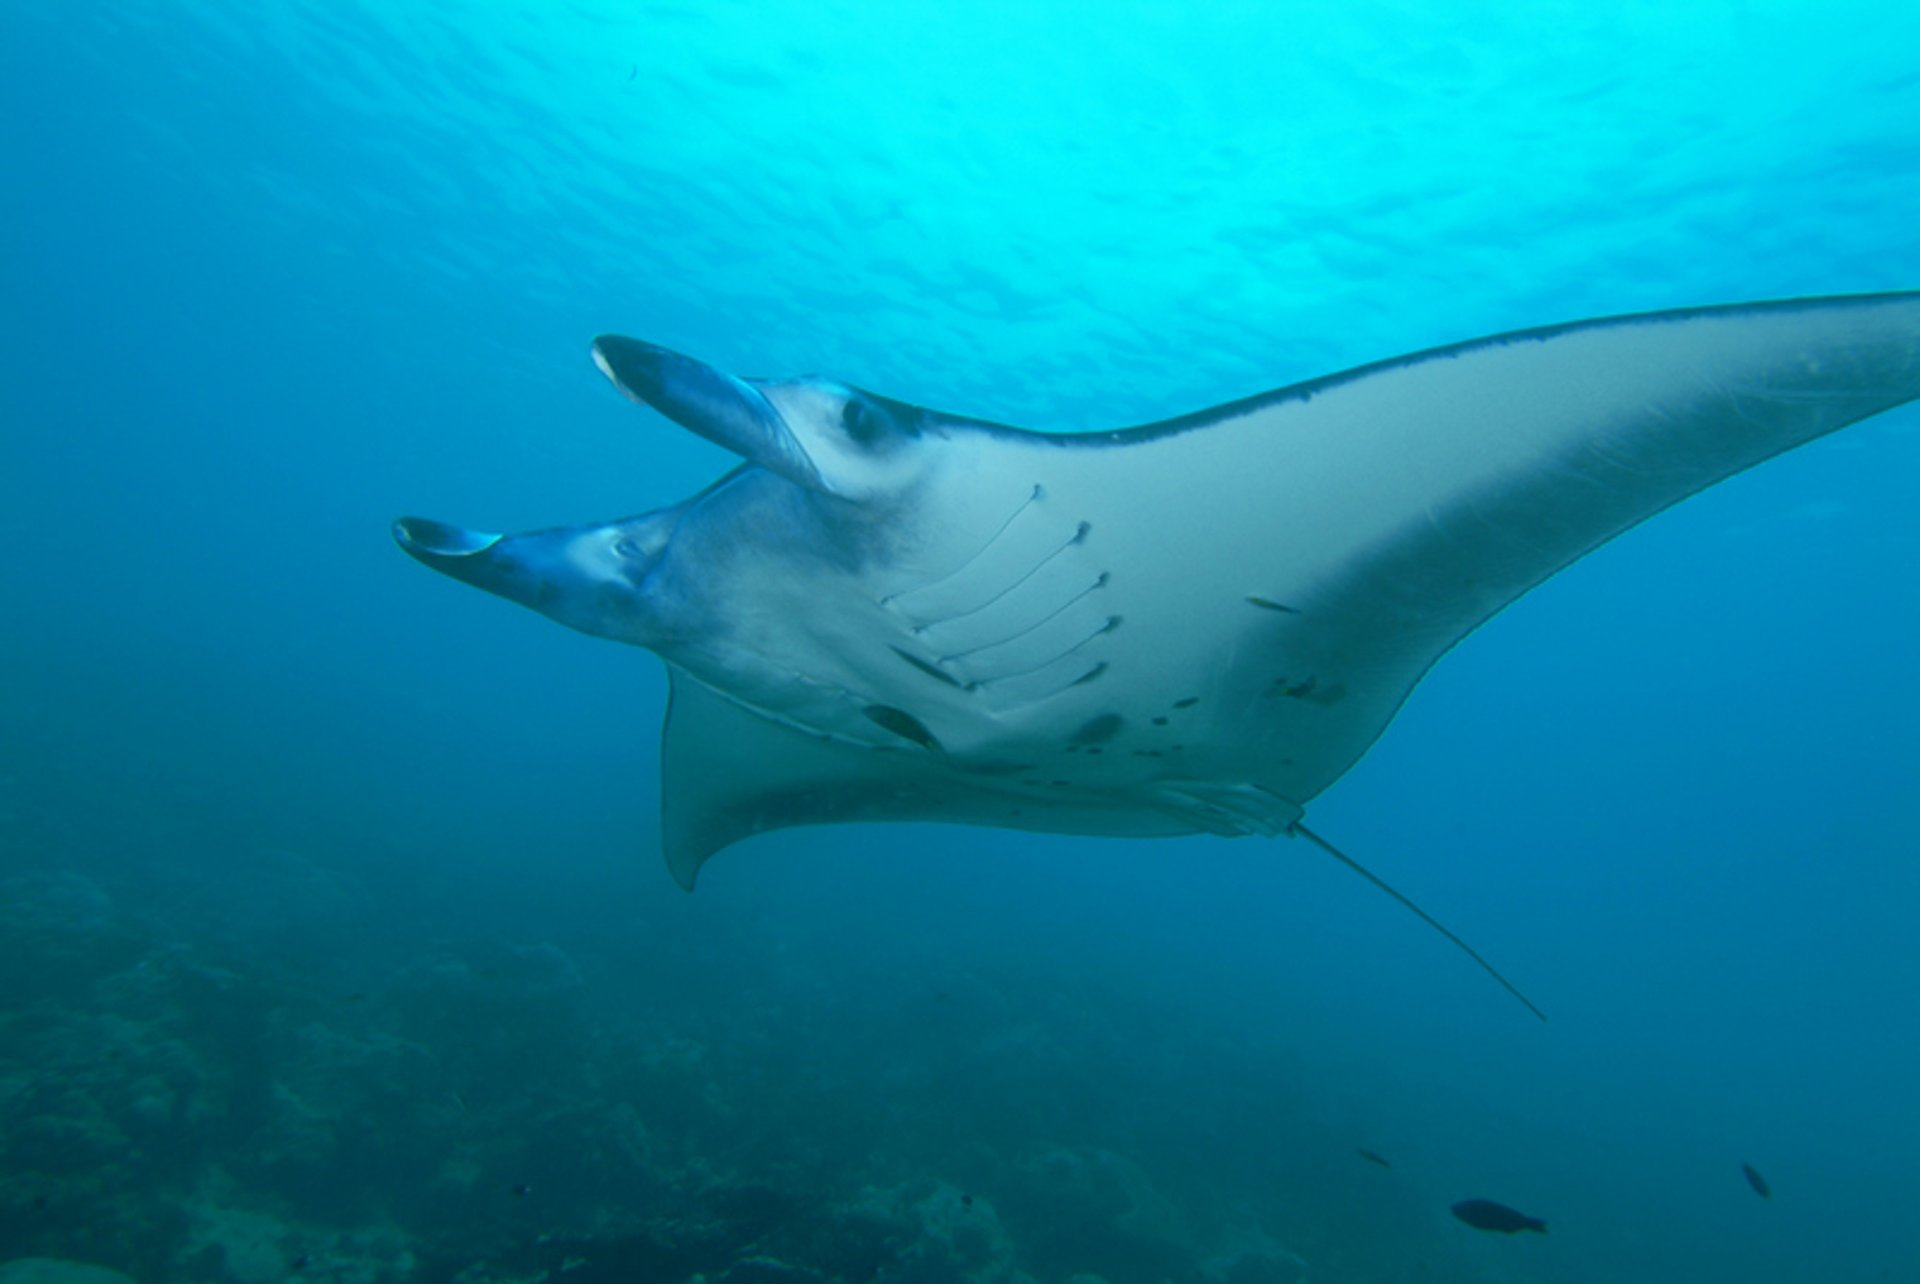 Manta Ray in Kenya 2020 - Best Time